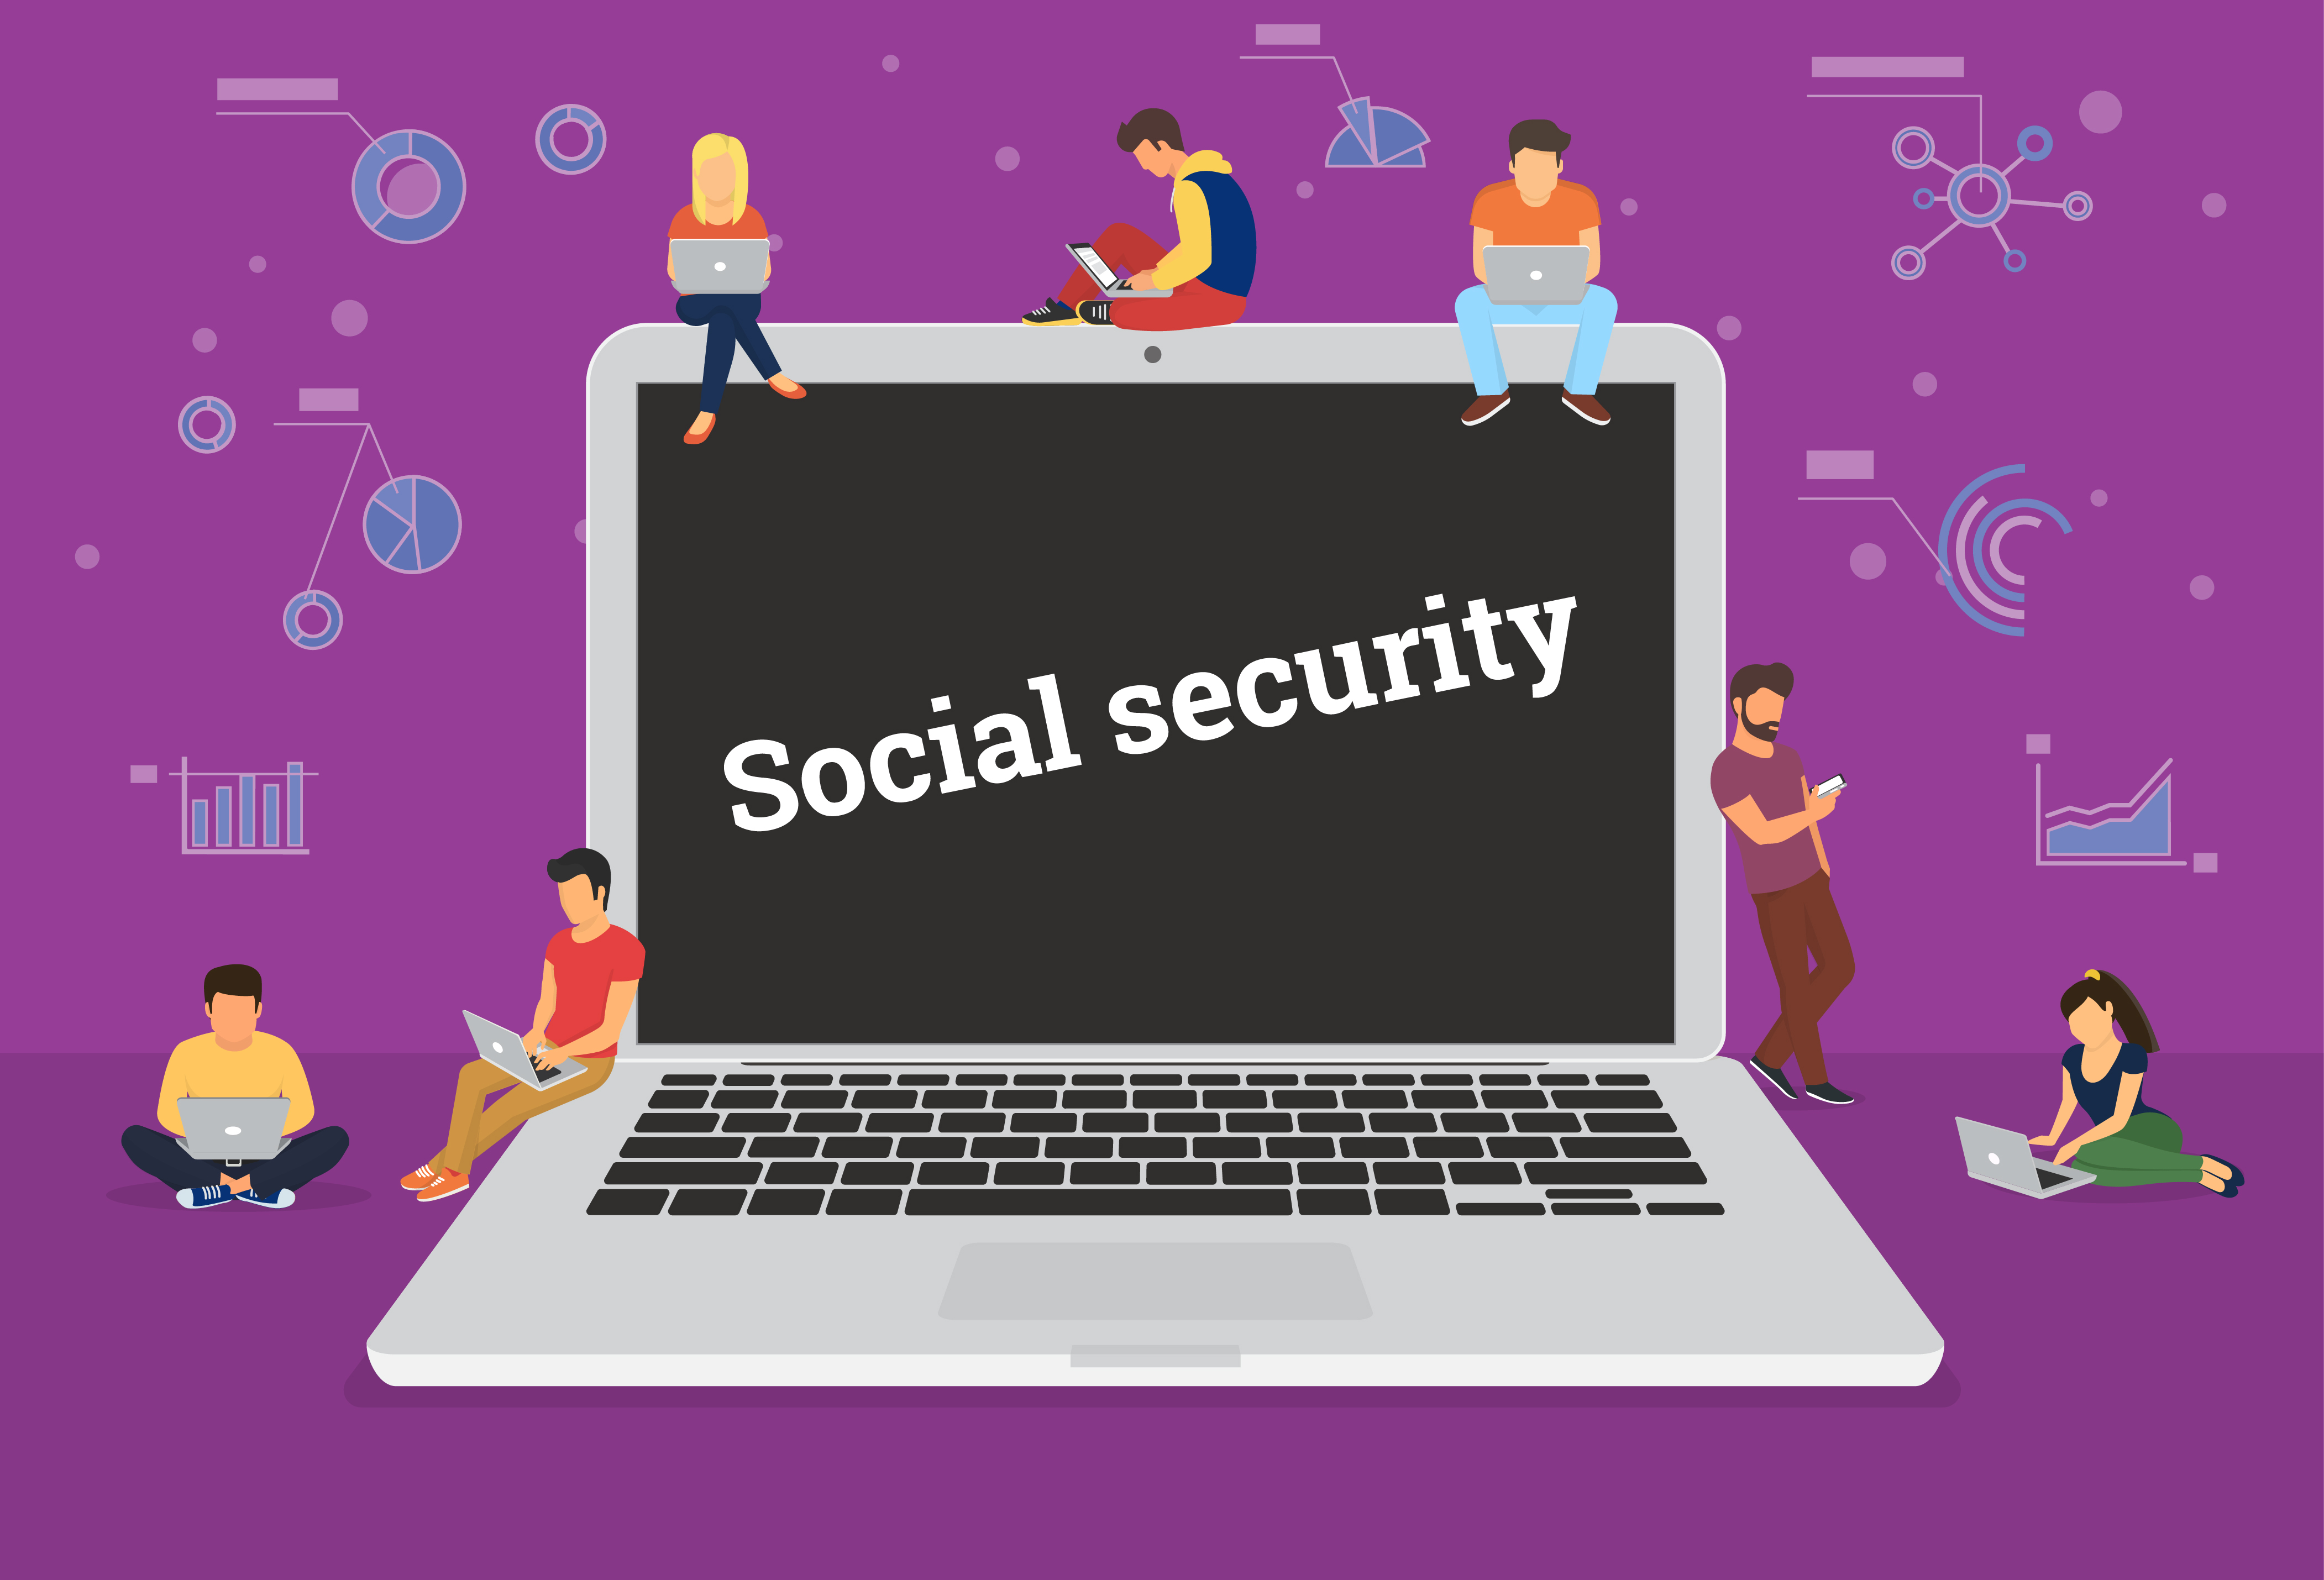 Illustration of a laptop screen displaying the caption 'social security'